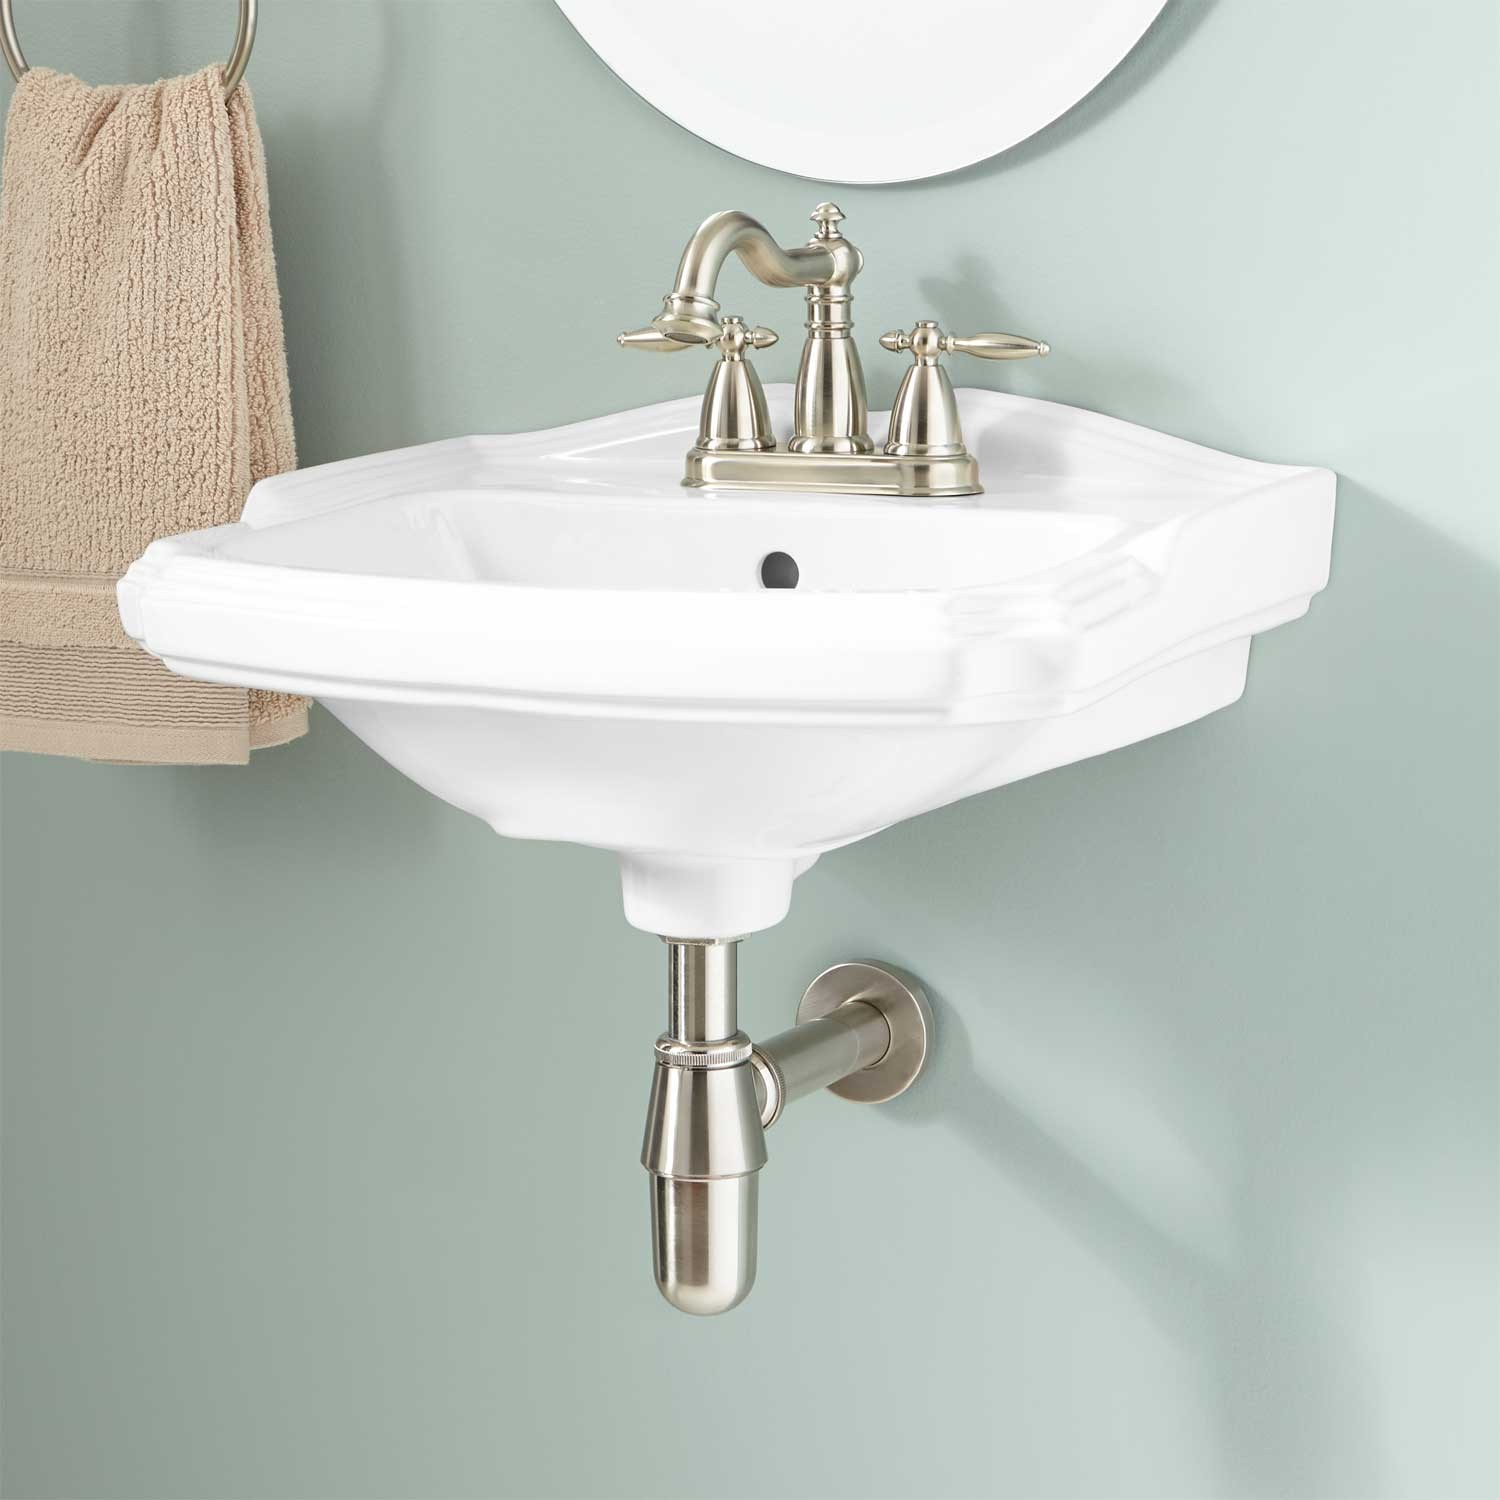 Cool Halden Porcelain Wall-Mount Bathroom Sink - Bathroom within Small Bathroom Sinks Wall Mount